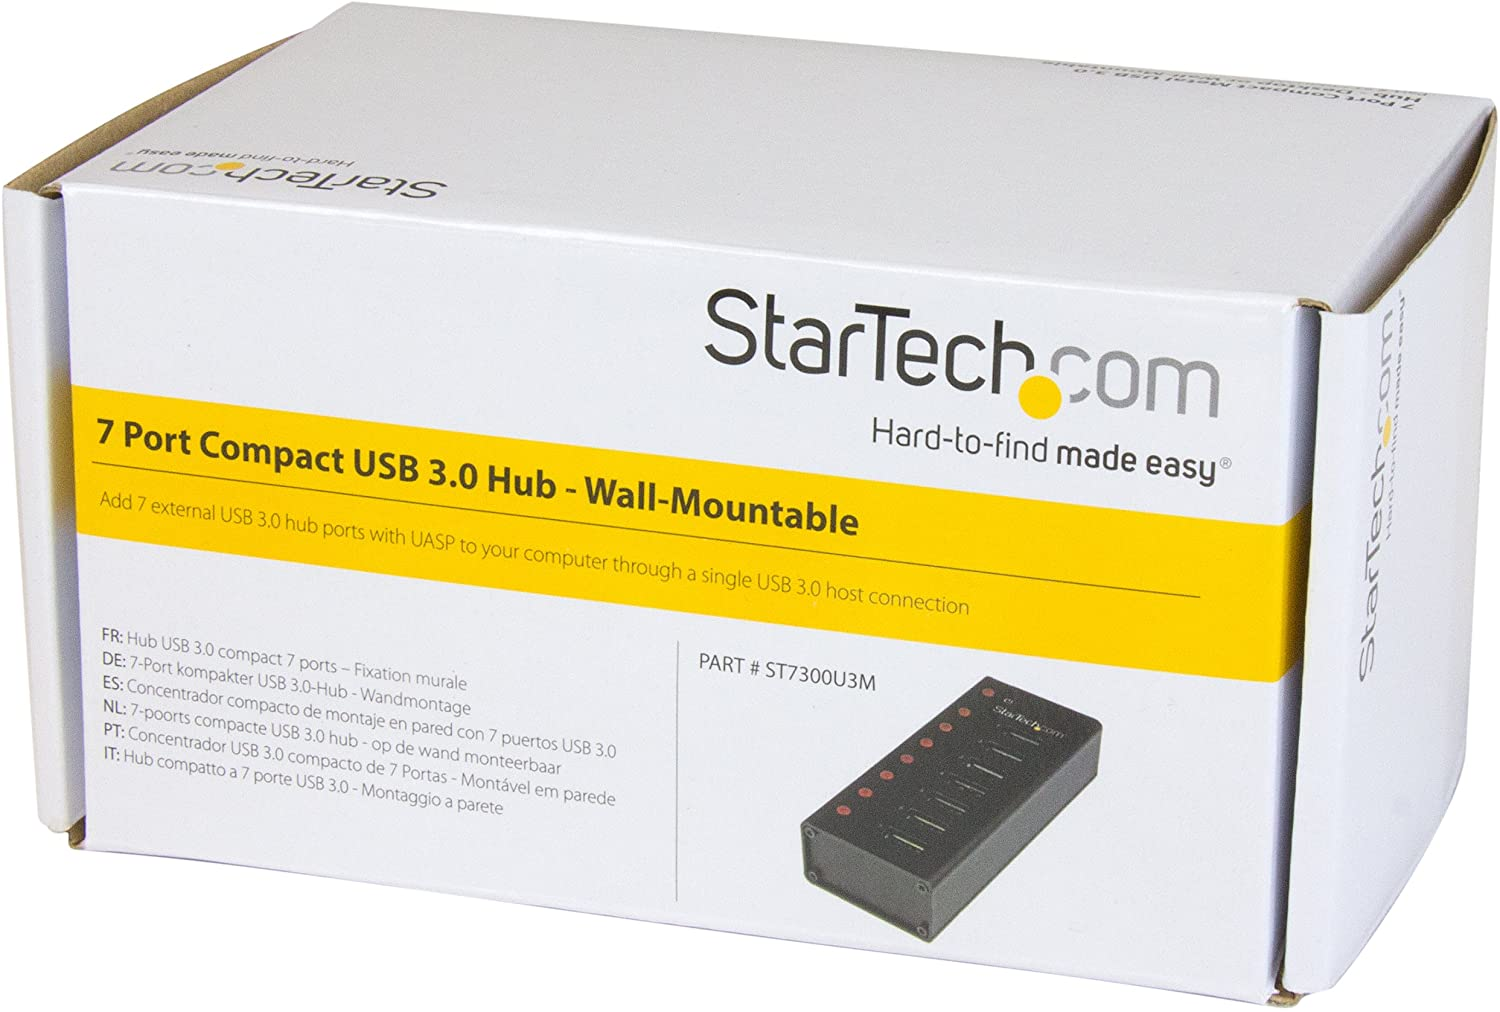 StarTech.com 7 Port USB 3.0 Hub - Desktop or Wall-mountable Metal Enclosure